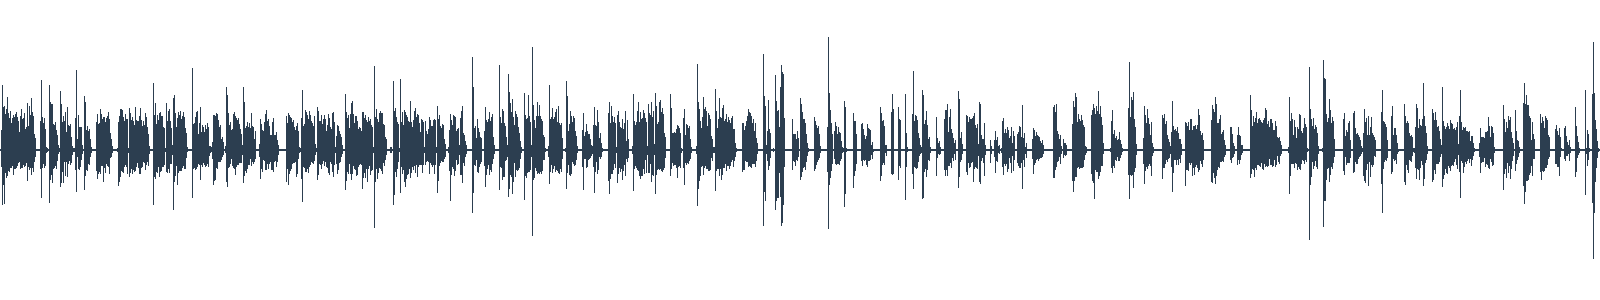 Krutý princ waveform